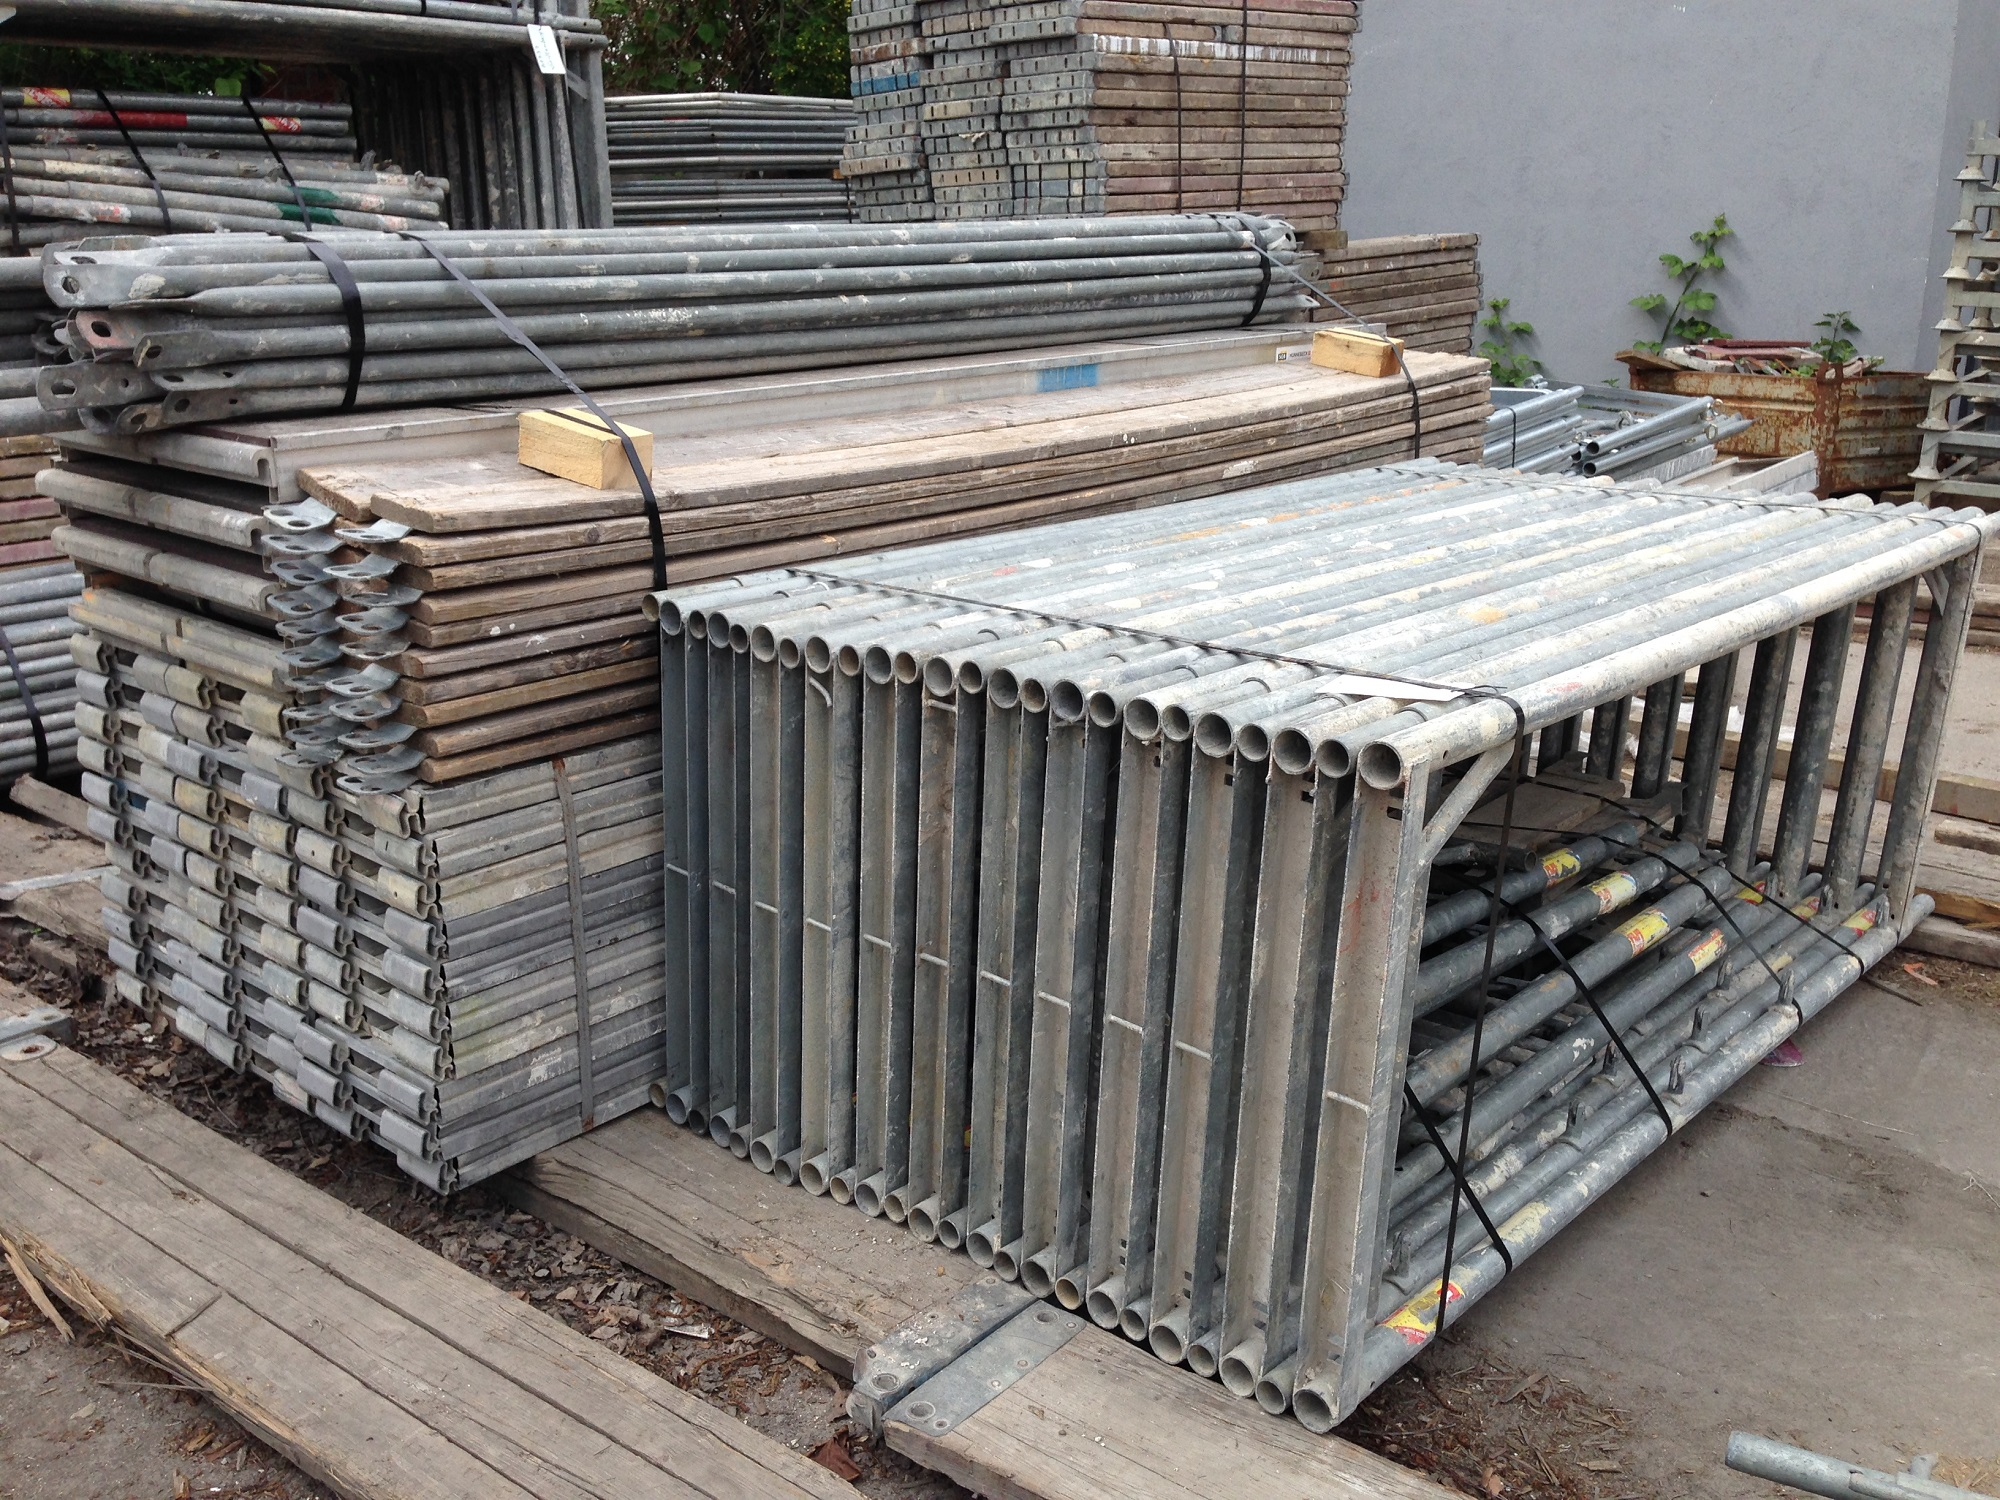 Lot chafaudage d 39 occasion complet 150m echafaudage - Echafaudage d occasion ...